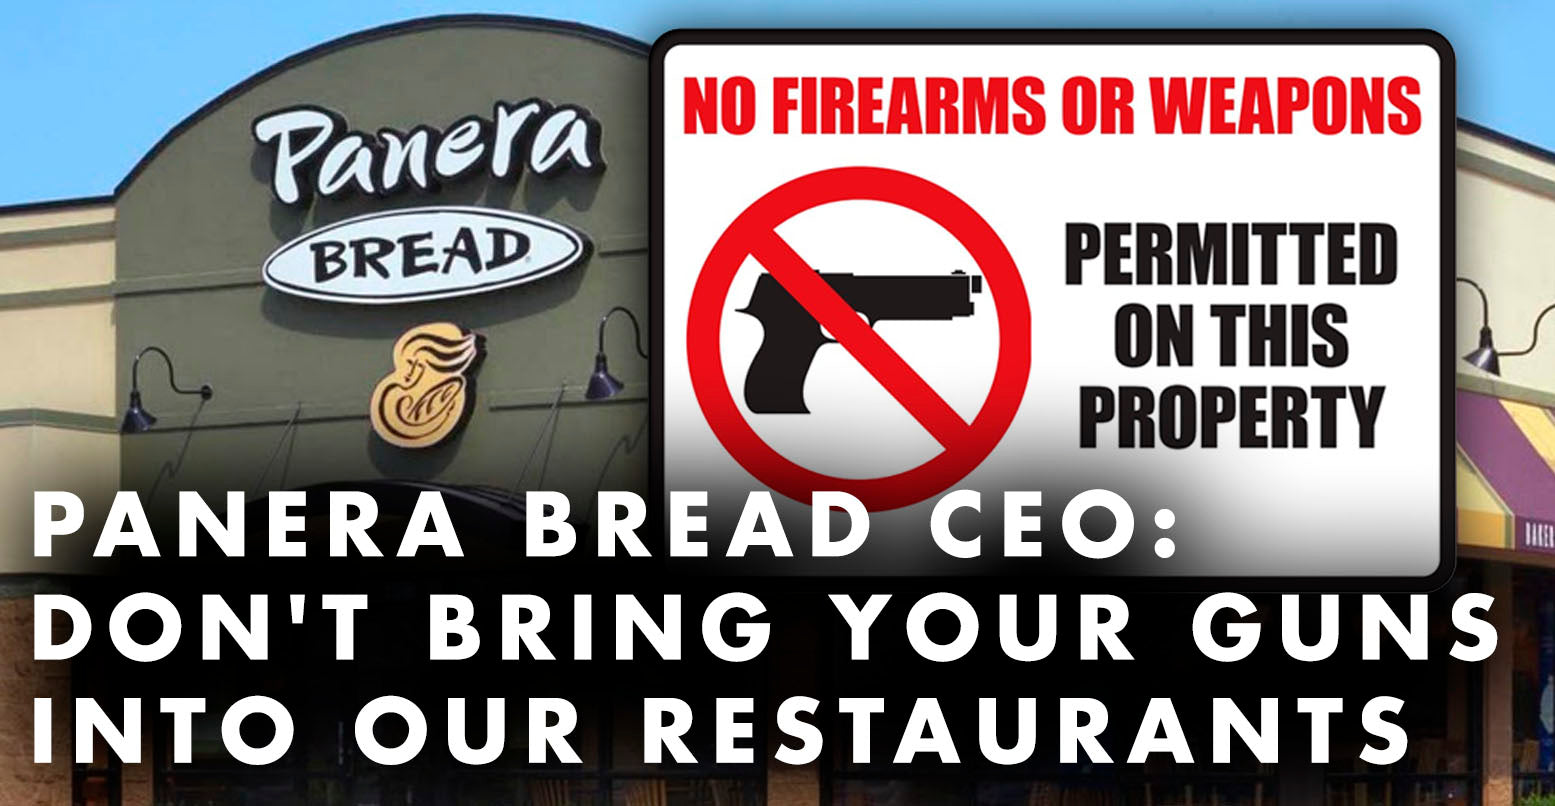 Panera Bread CEO: Don't Bring Your Guns Into Our Restaurants